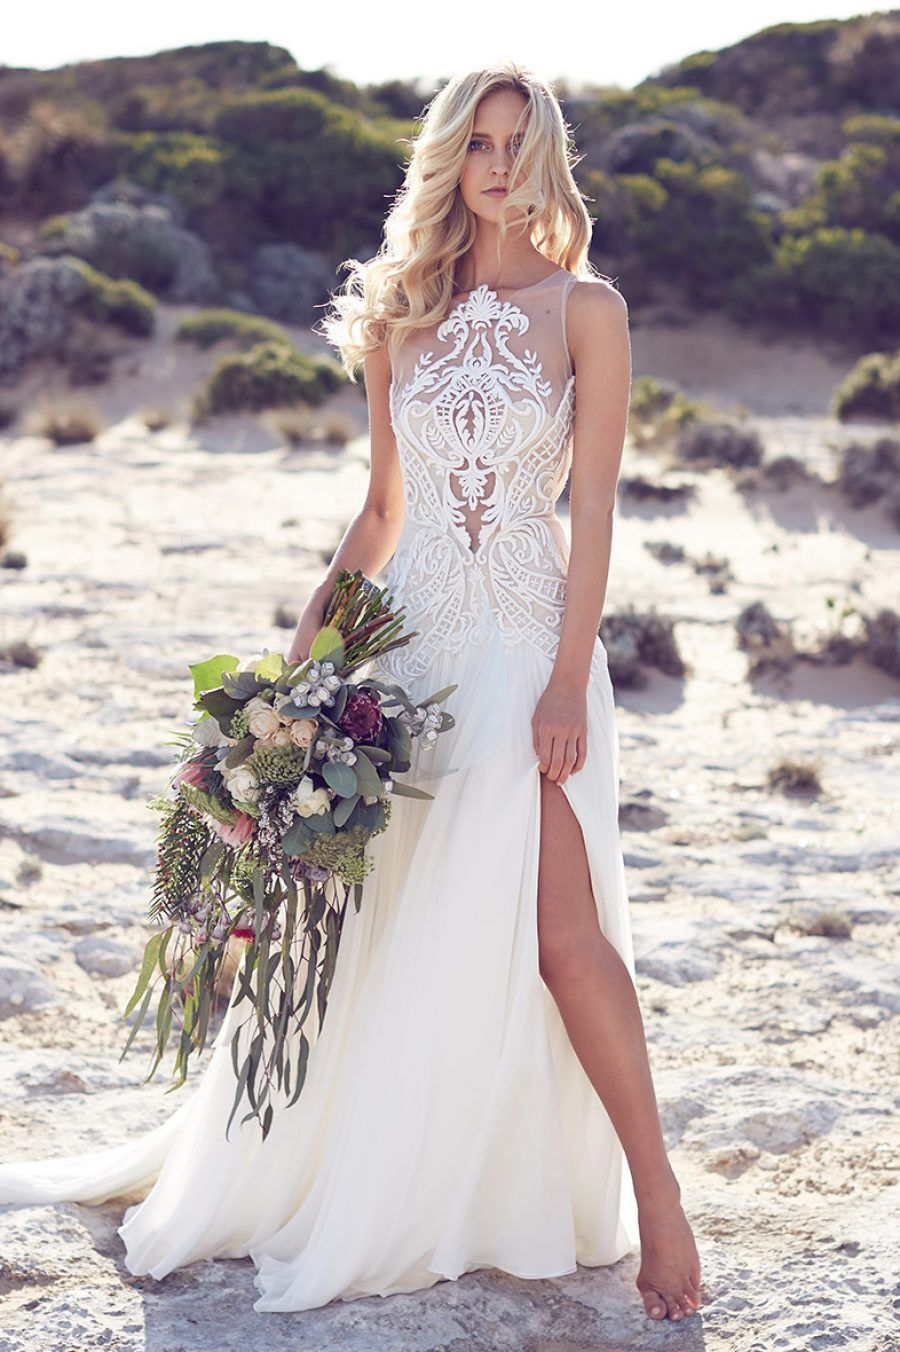 Suzanne harward wedding dress vestidos pinterest wedding dress